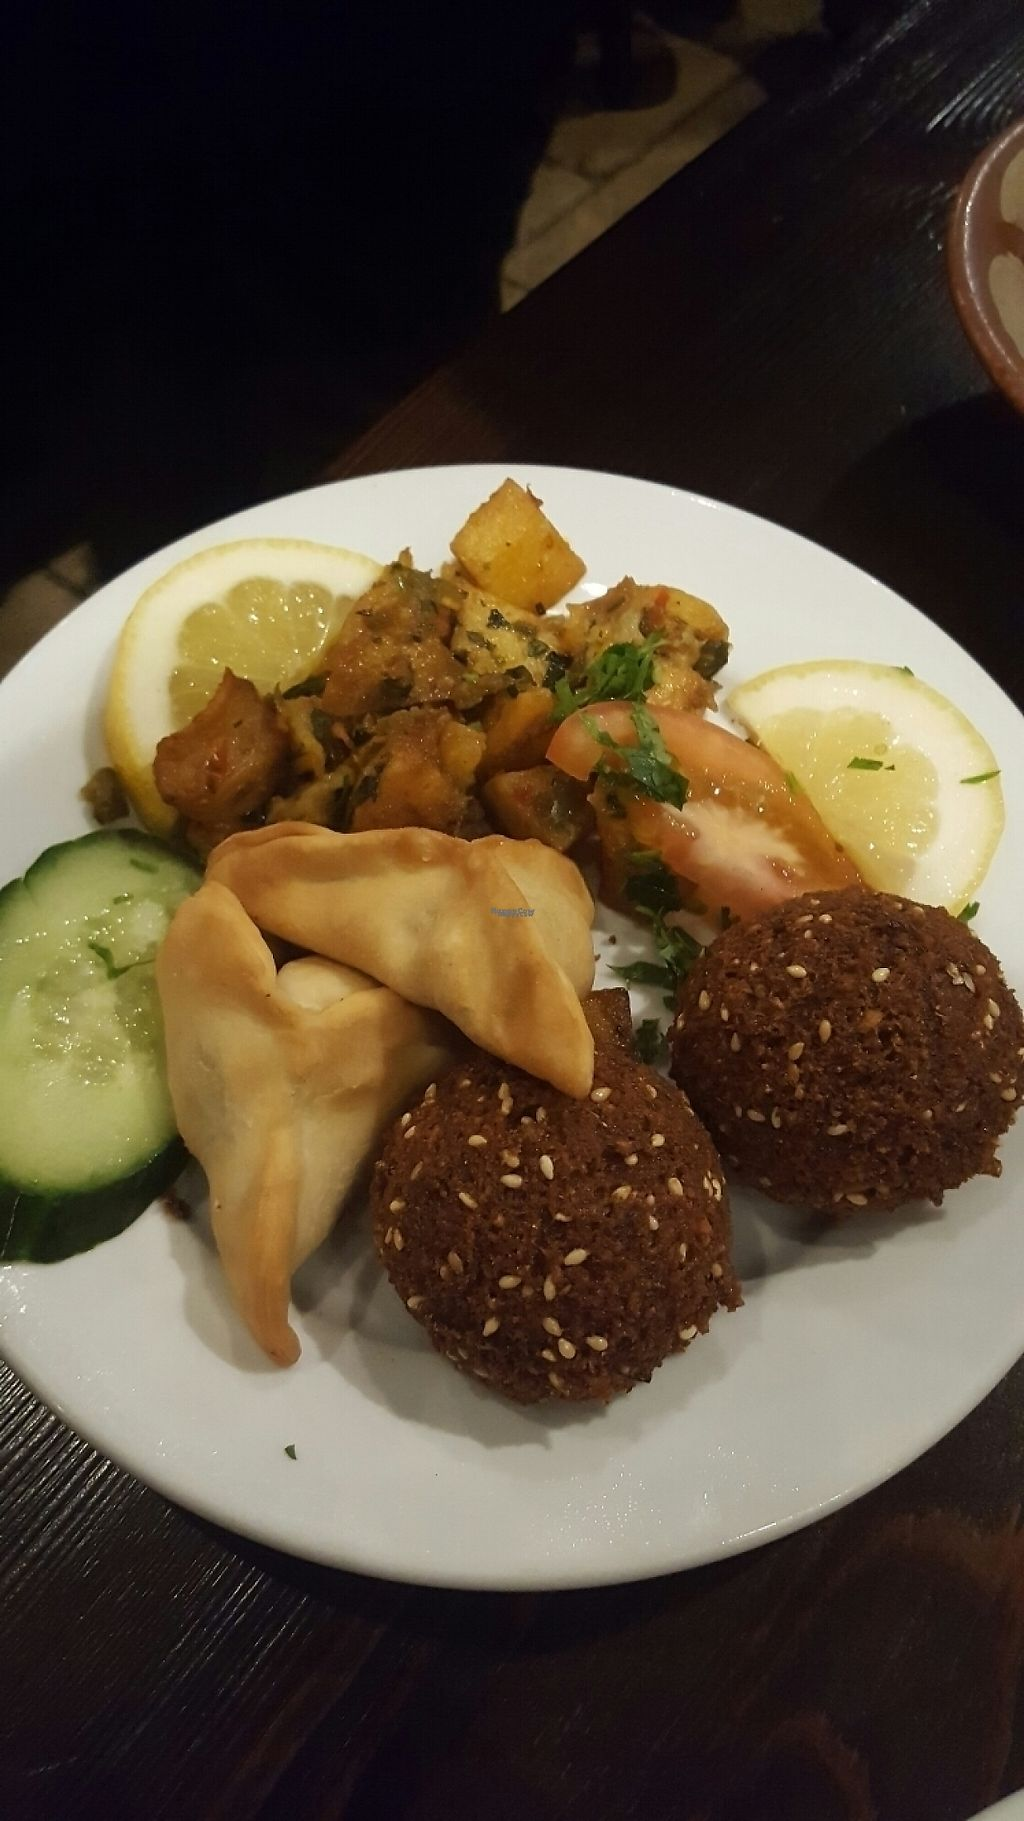 """Photo of Jeitta  by <a href=""""/members/profile/SharaFionaScates"""">SharaFionaScates</a> <br/>Starters - falafel and I think Fatayer spinach and batata harra - so good!  <br/> March 29, 2017  - <a href='/contact/abuse/image/55080/242404'>Report</a>"""